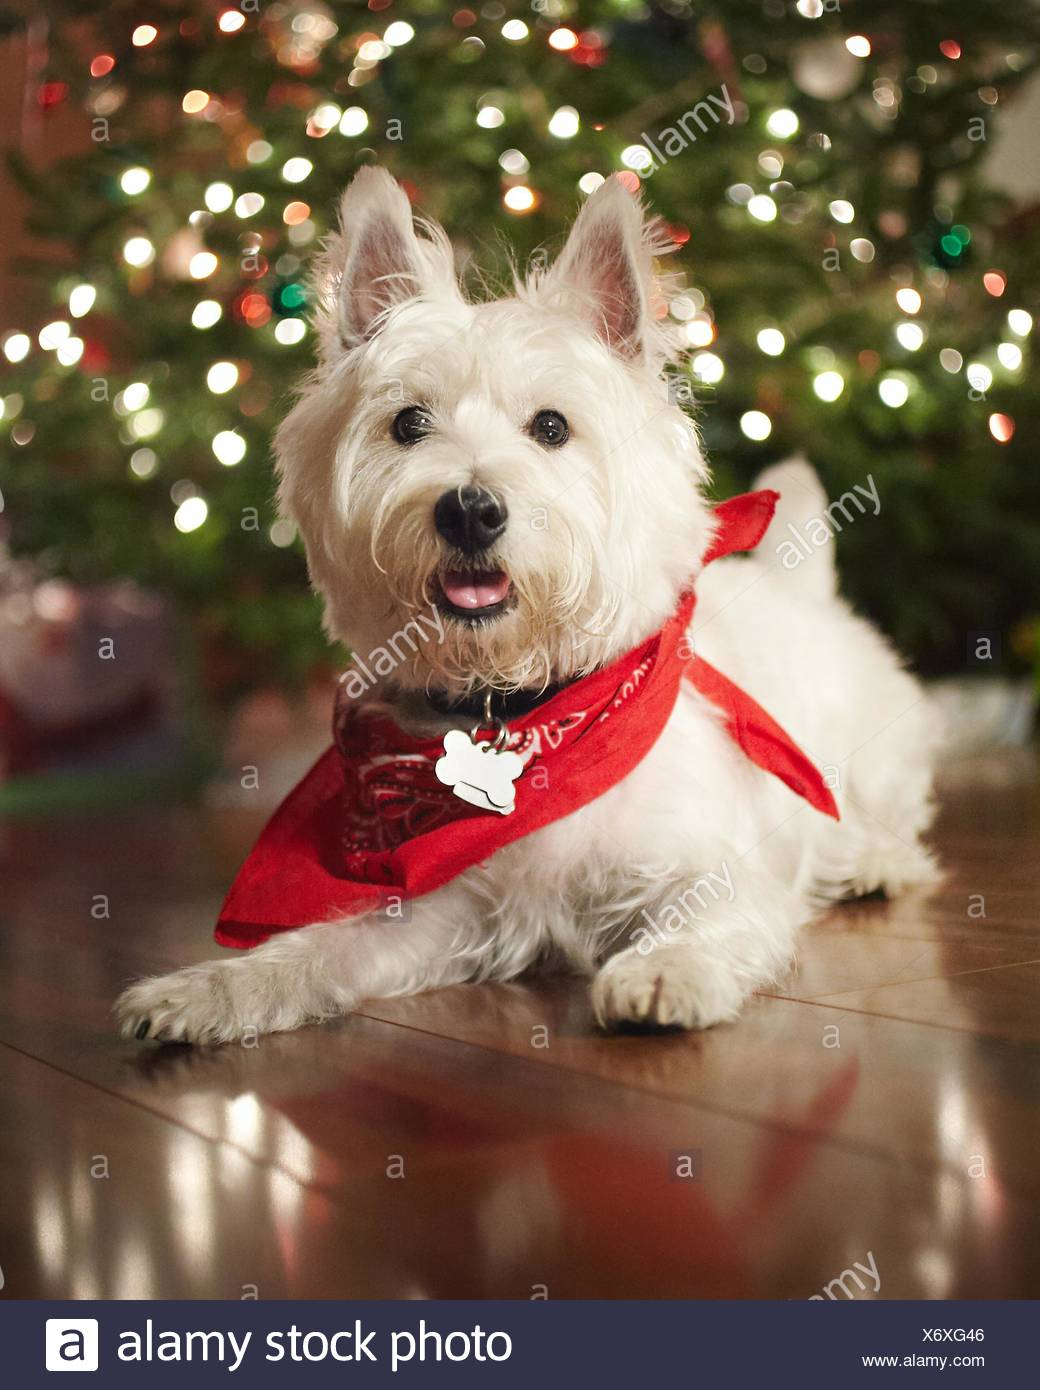 Holliday Puppy1 - Stock Image